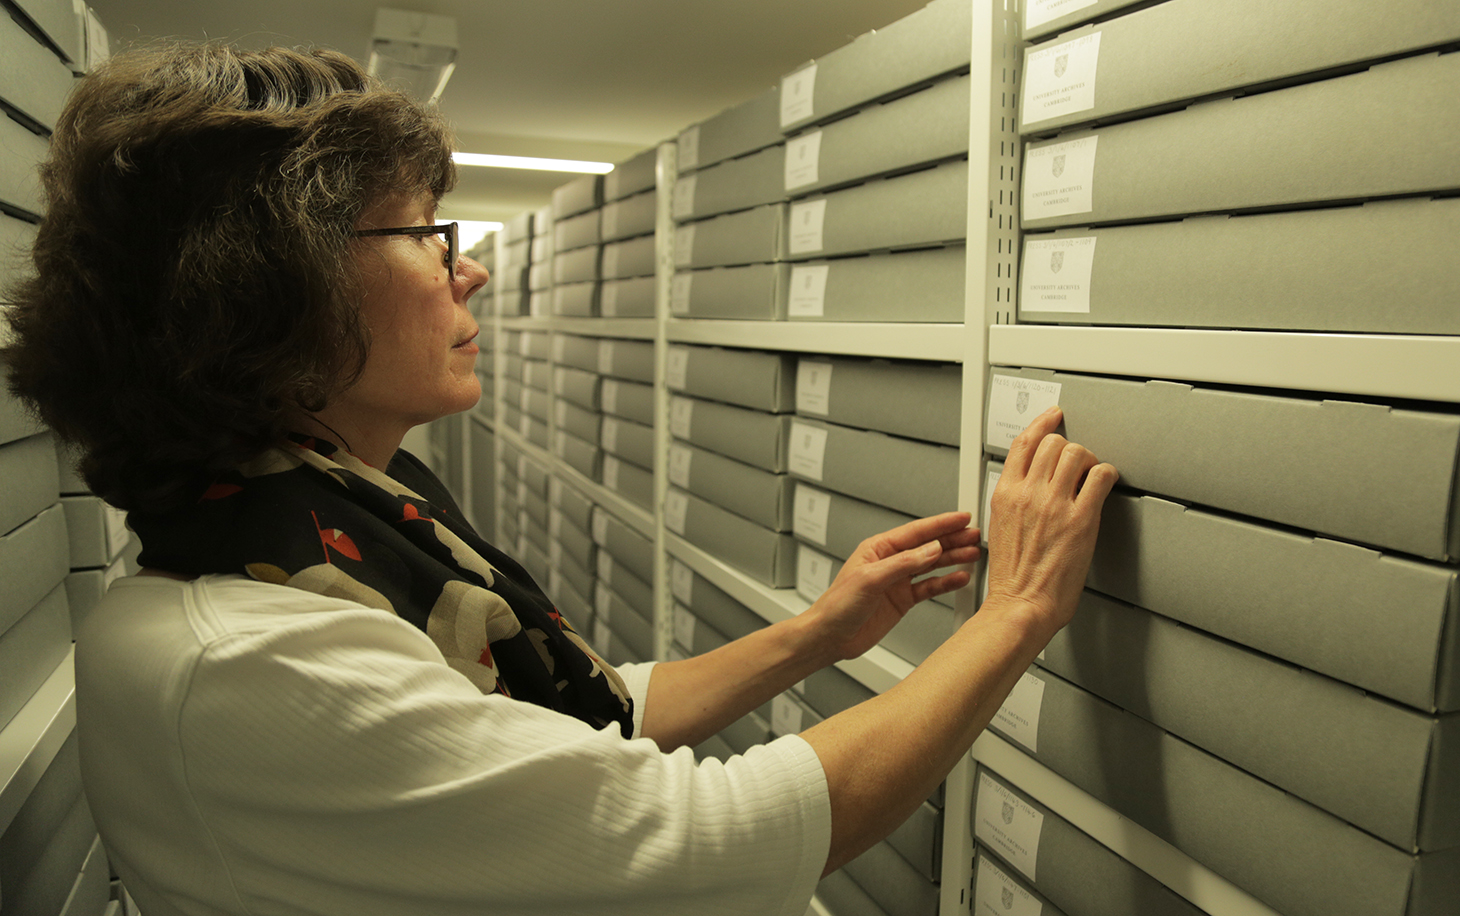 In the strongroom: Press Archivist, Dr Rosalind Grooms, looks for documents in the secure and carefully controlled environment of the University Library's strongroom.